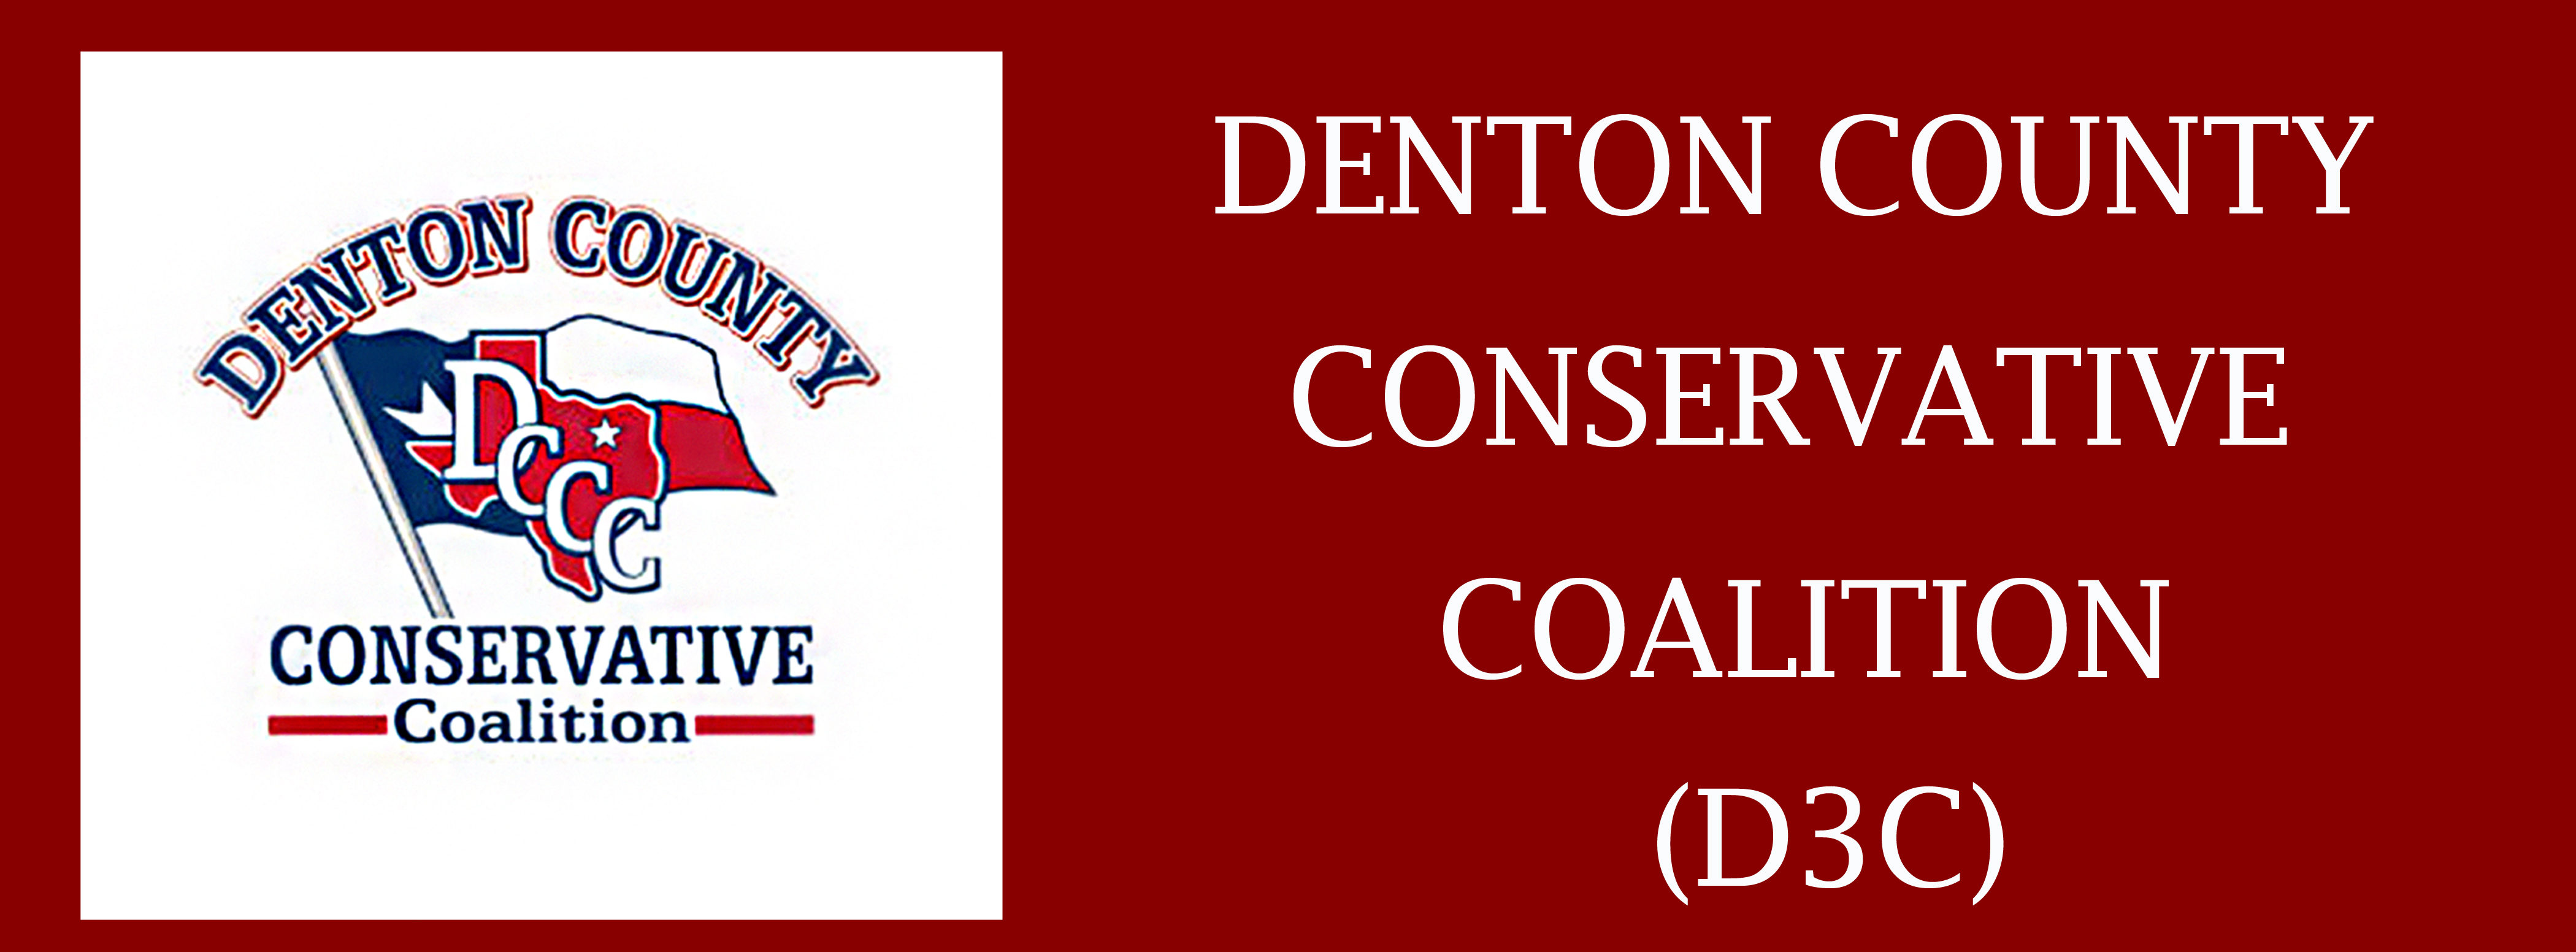 Denton County Conservative Coalition